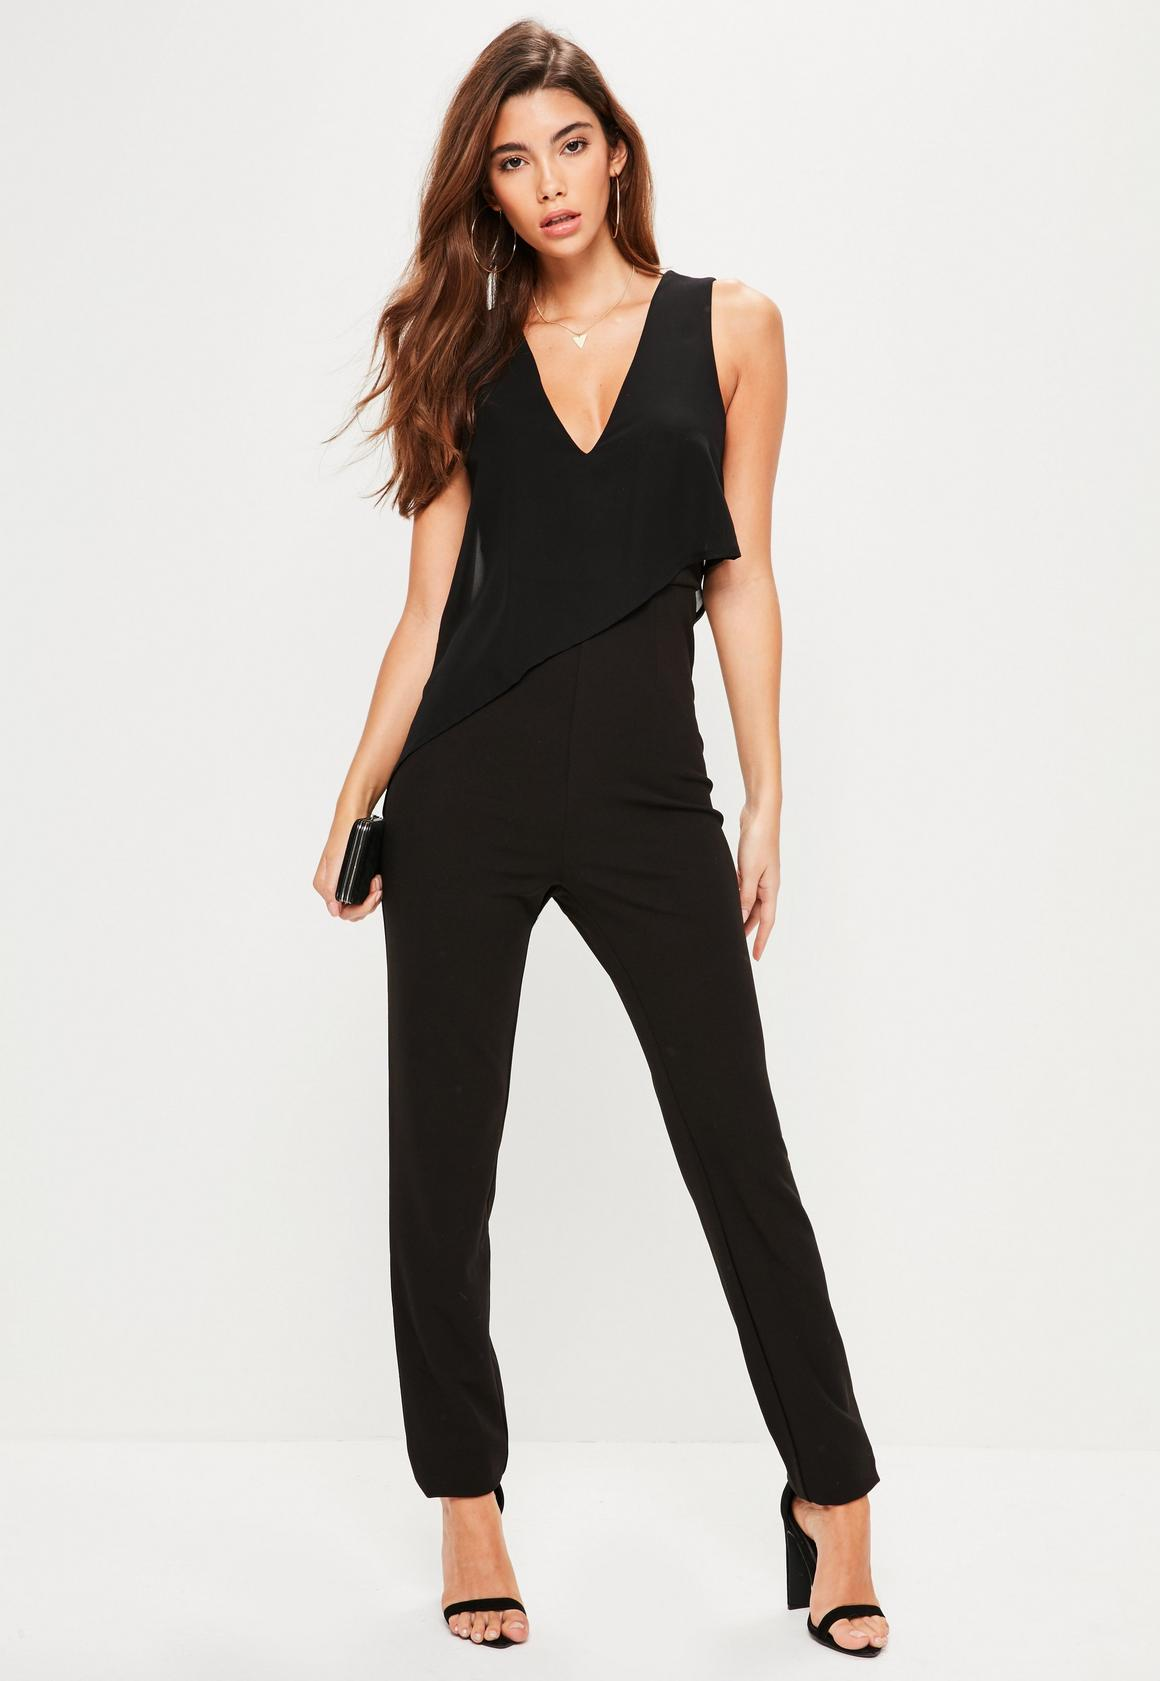 Black Jumpsuits | Women's Backless & Mesh - Missguided